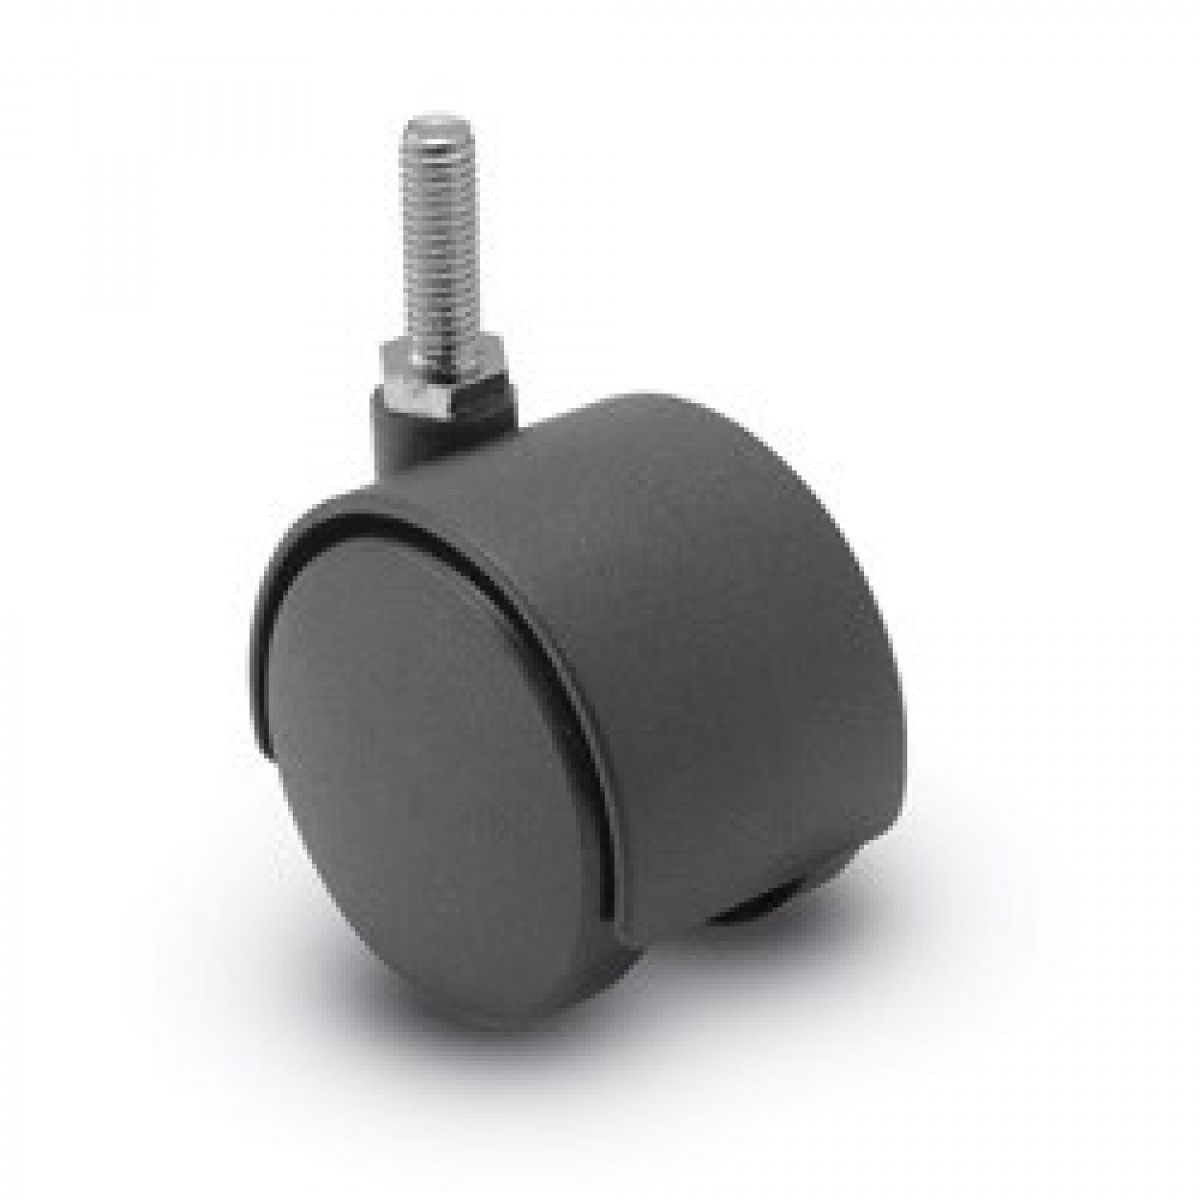 Casters And Wheels Furniture Casters Wood Stem Furniture Casters Metal